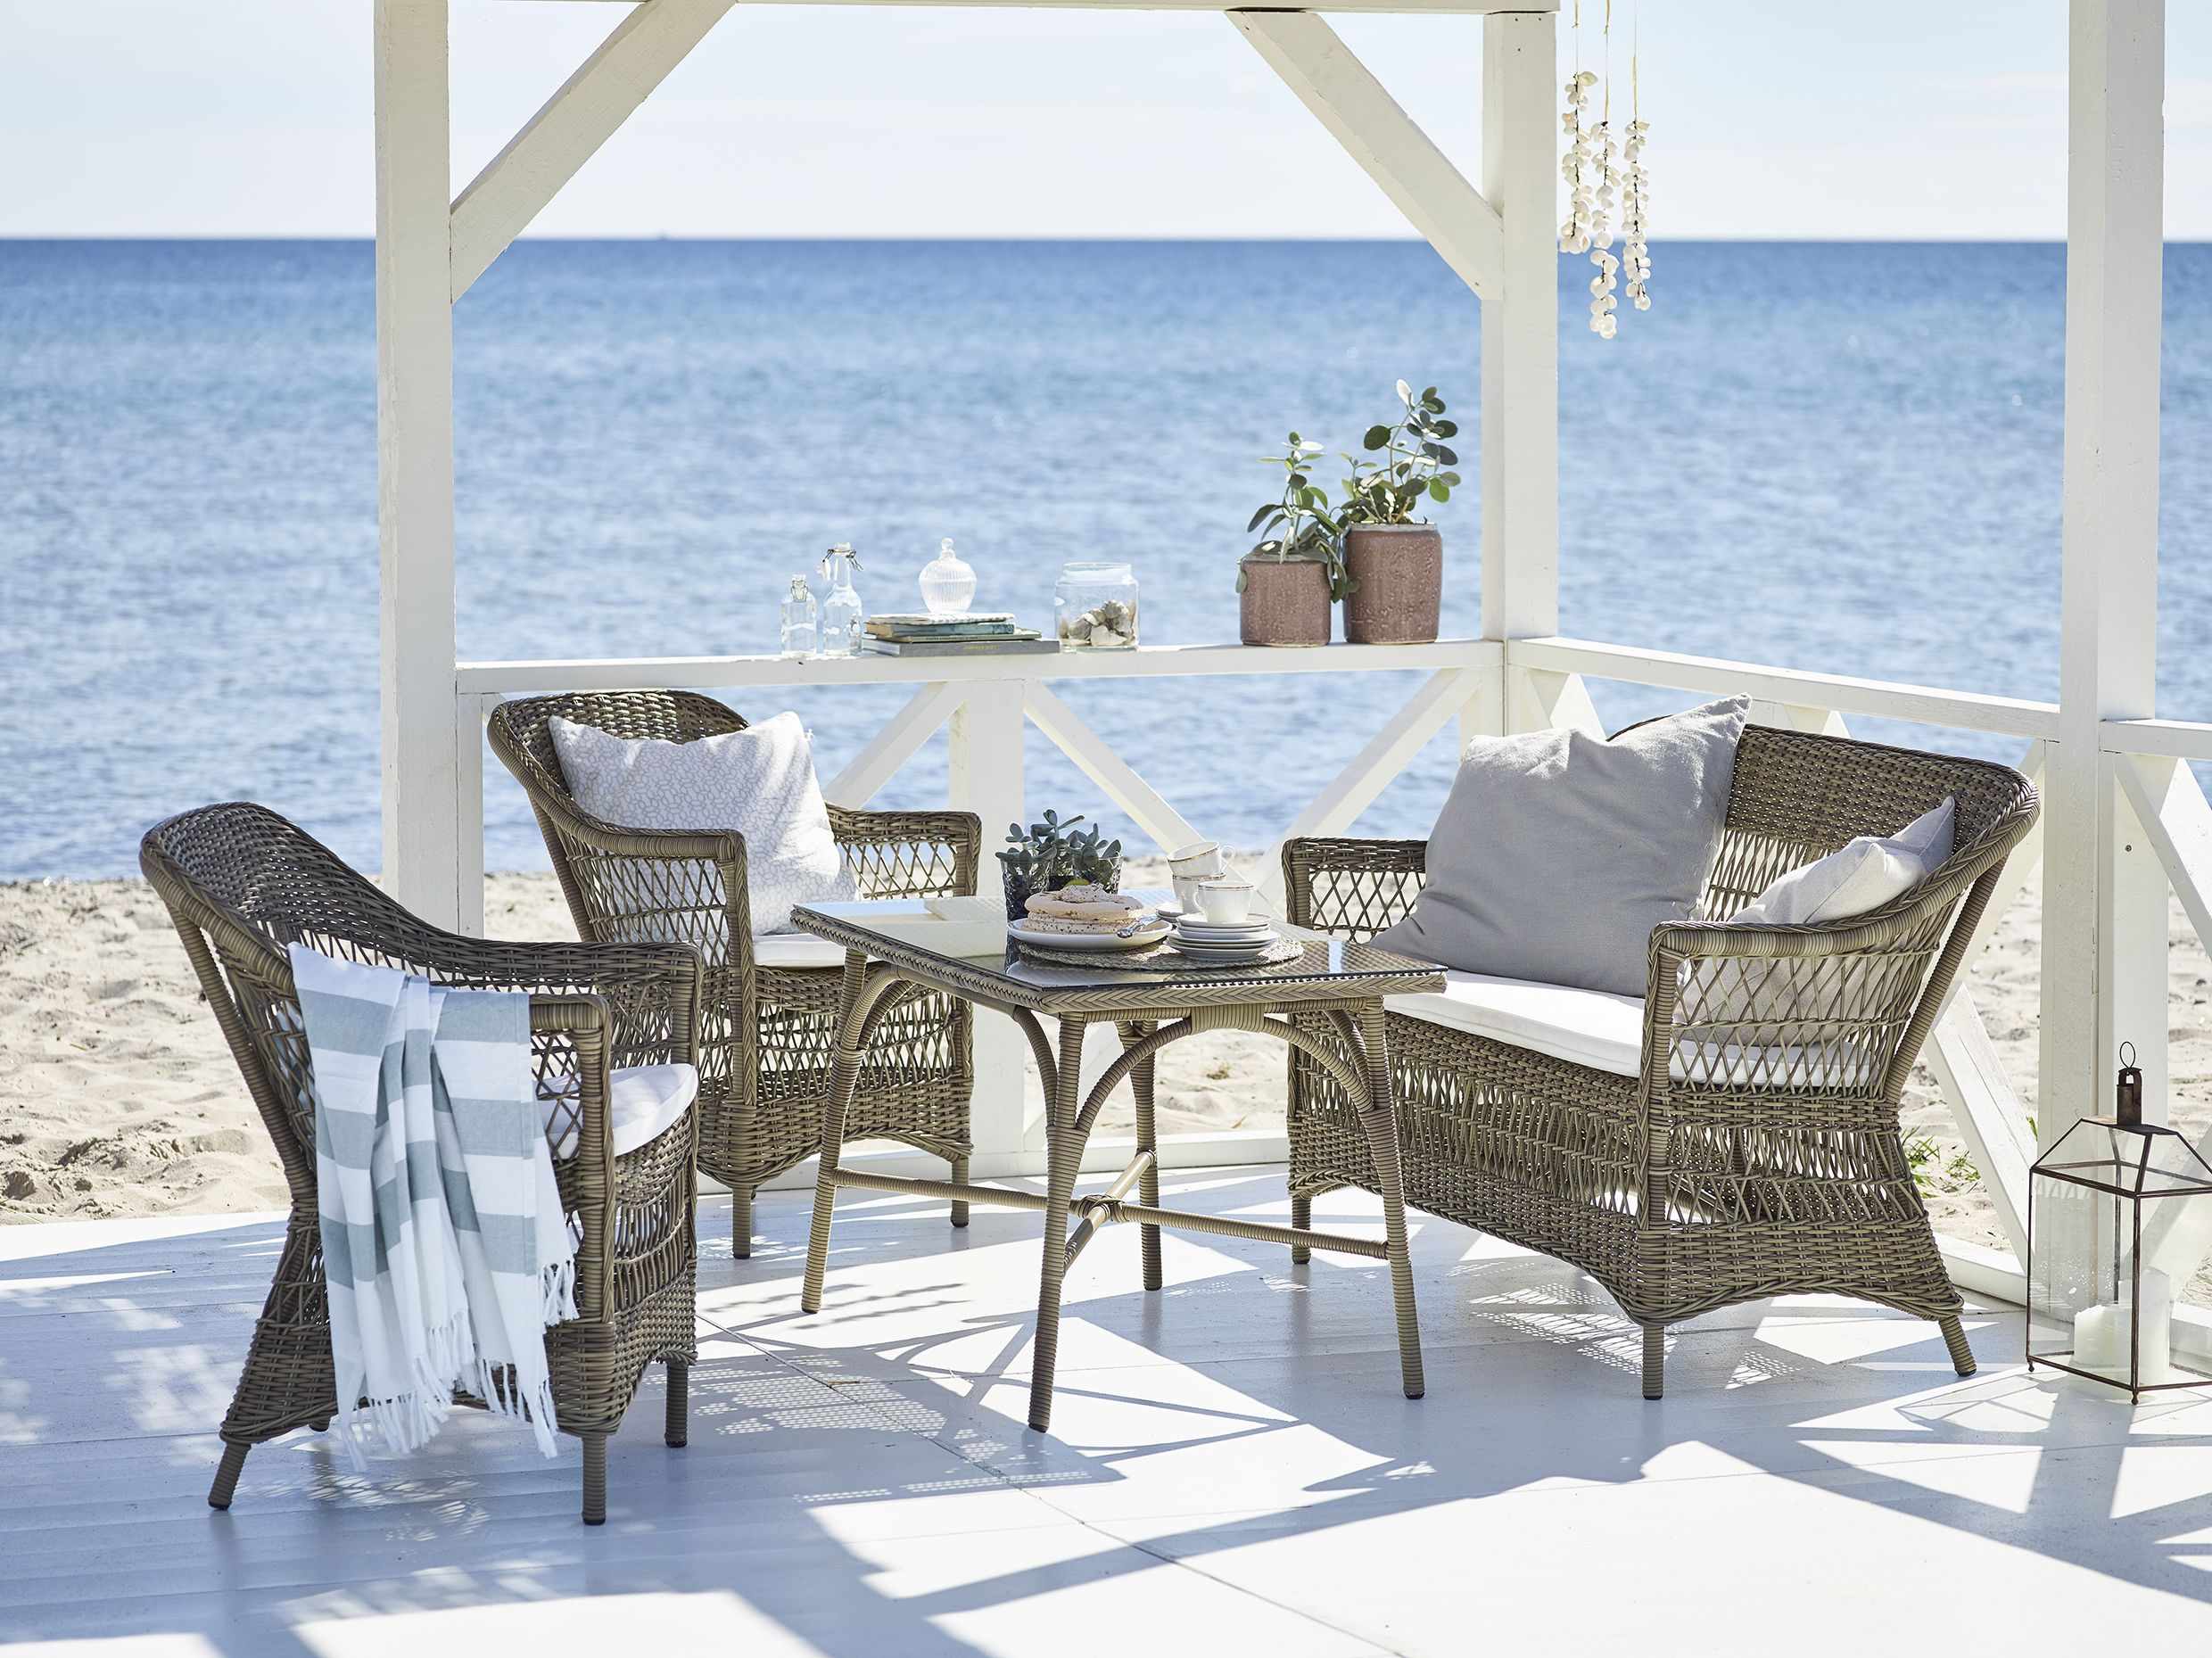 Patio at the beach charlot 2 seater and chairs designed for outdoor use